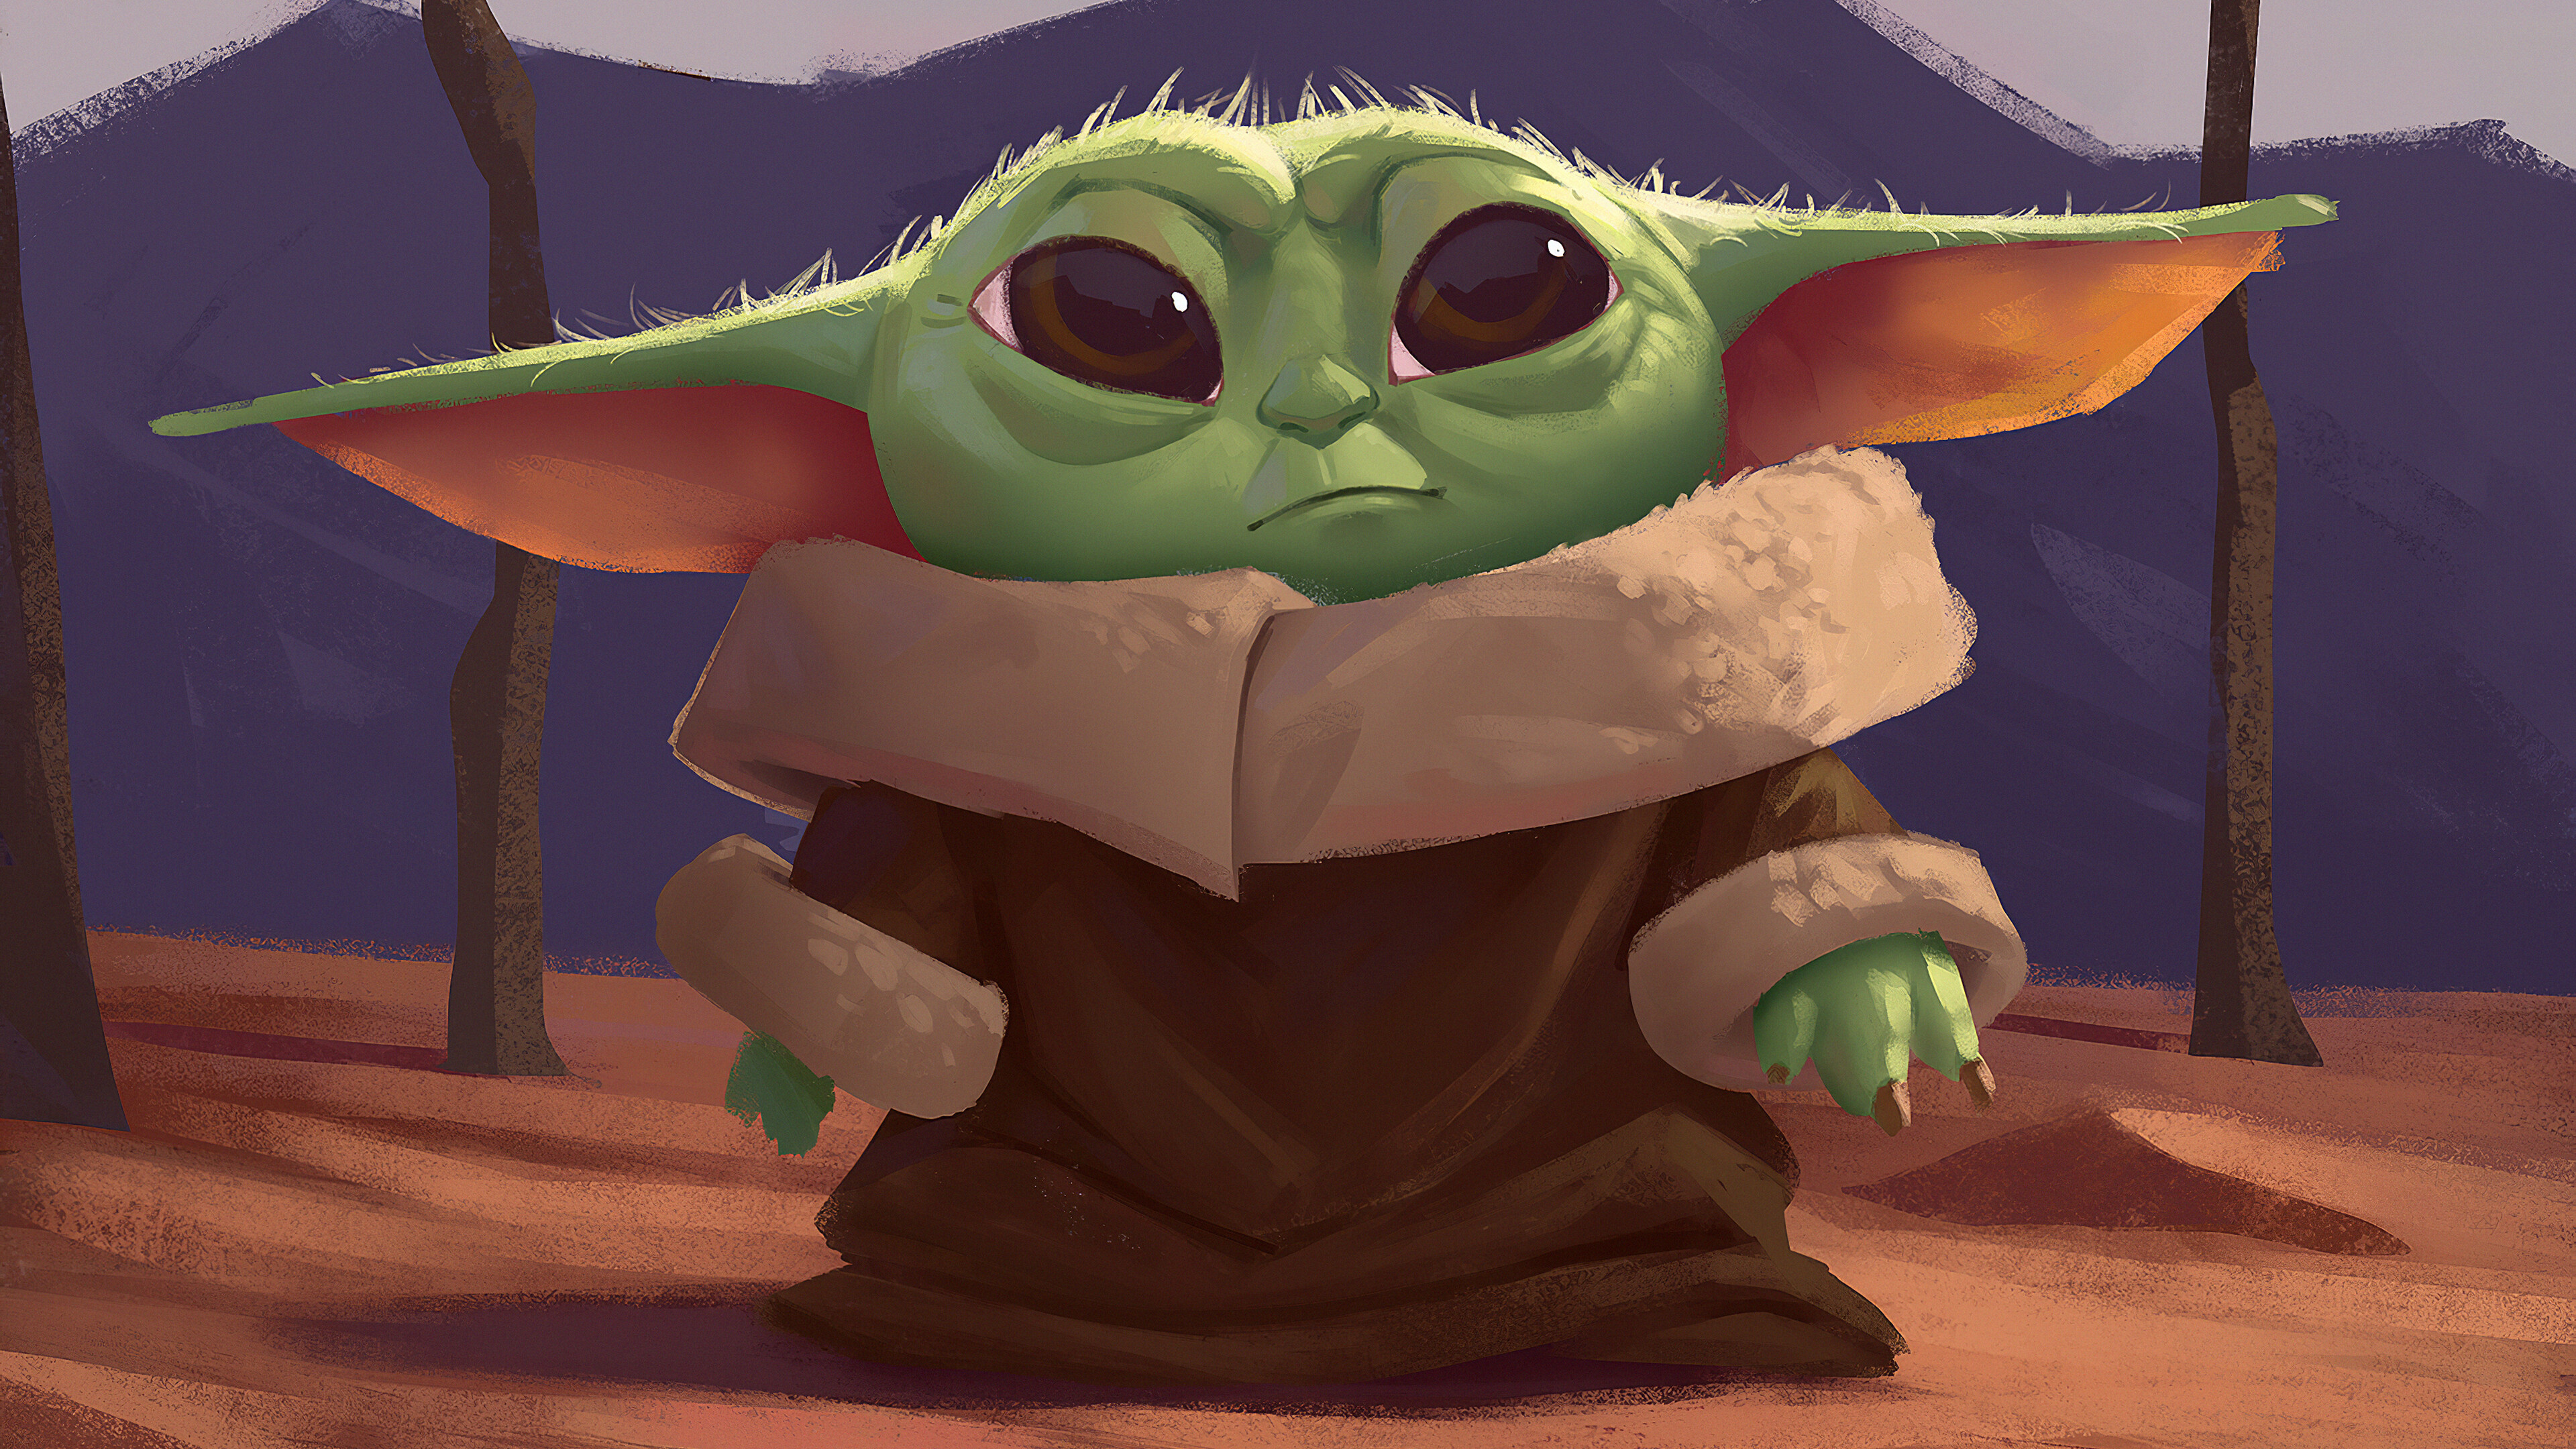 Baby Yoda Fanart Wallpaper 4k Ultra HD ID:4583